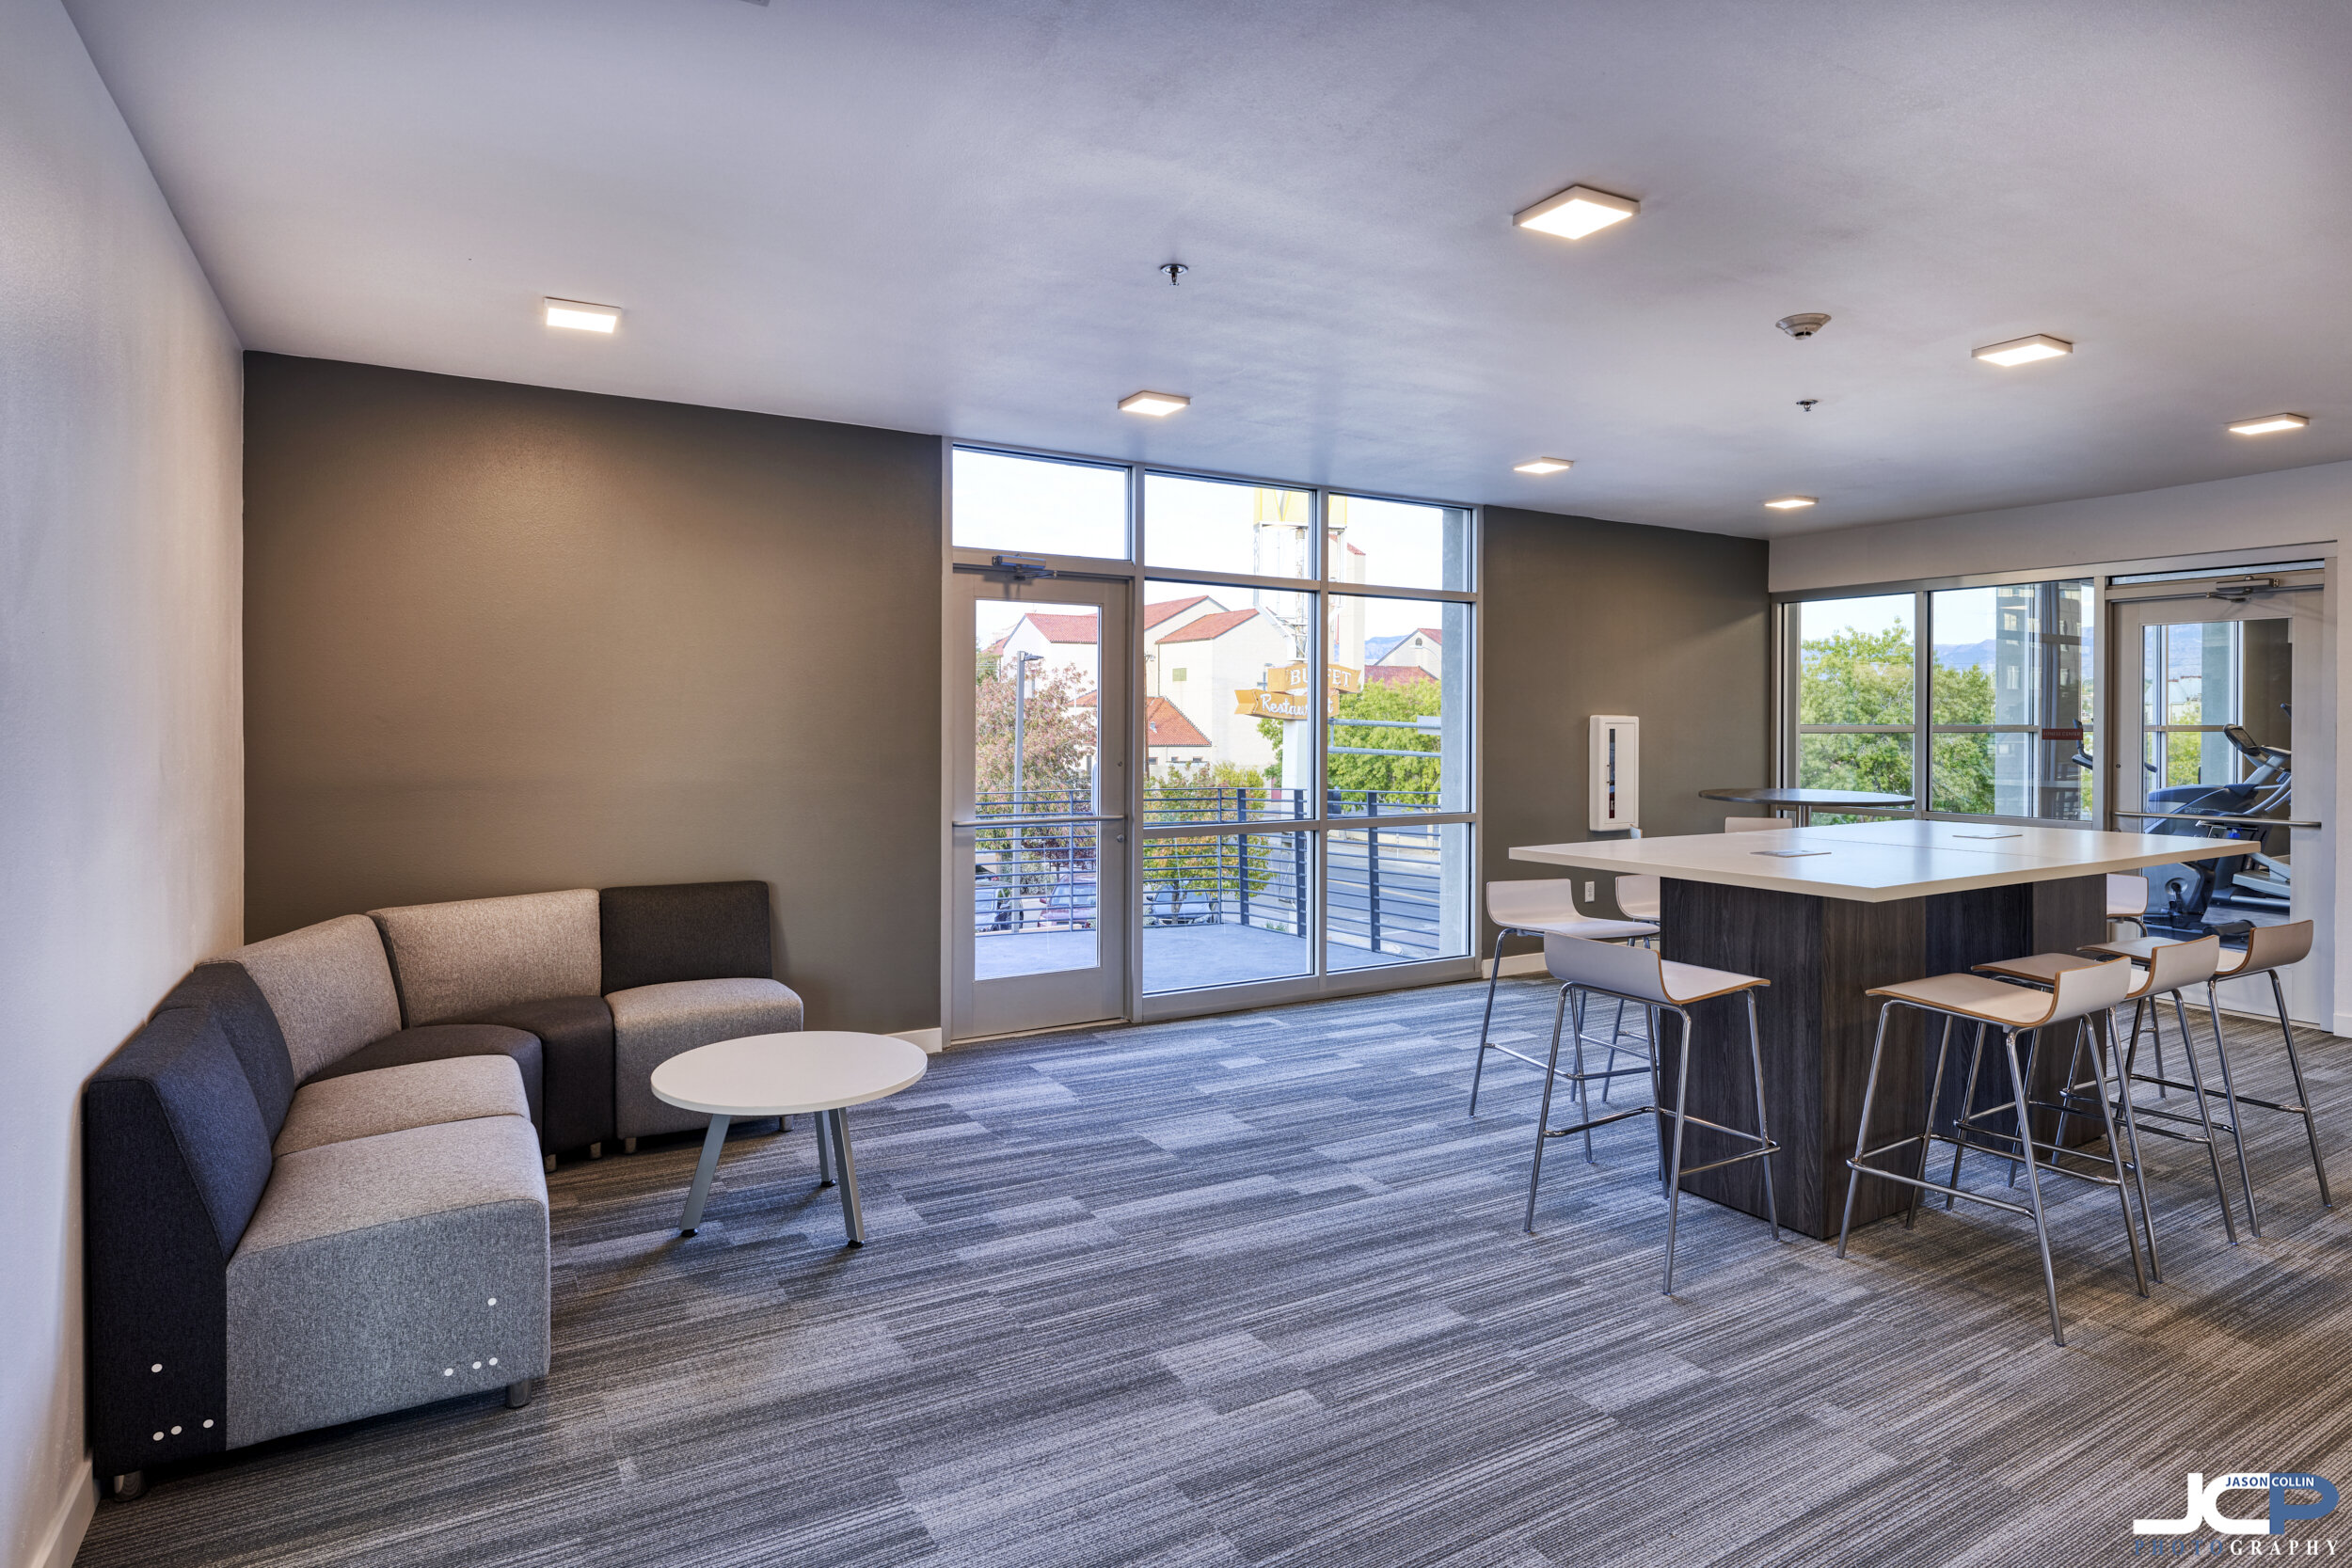 interior commercial photography